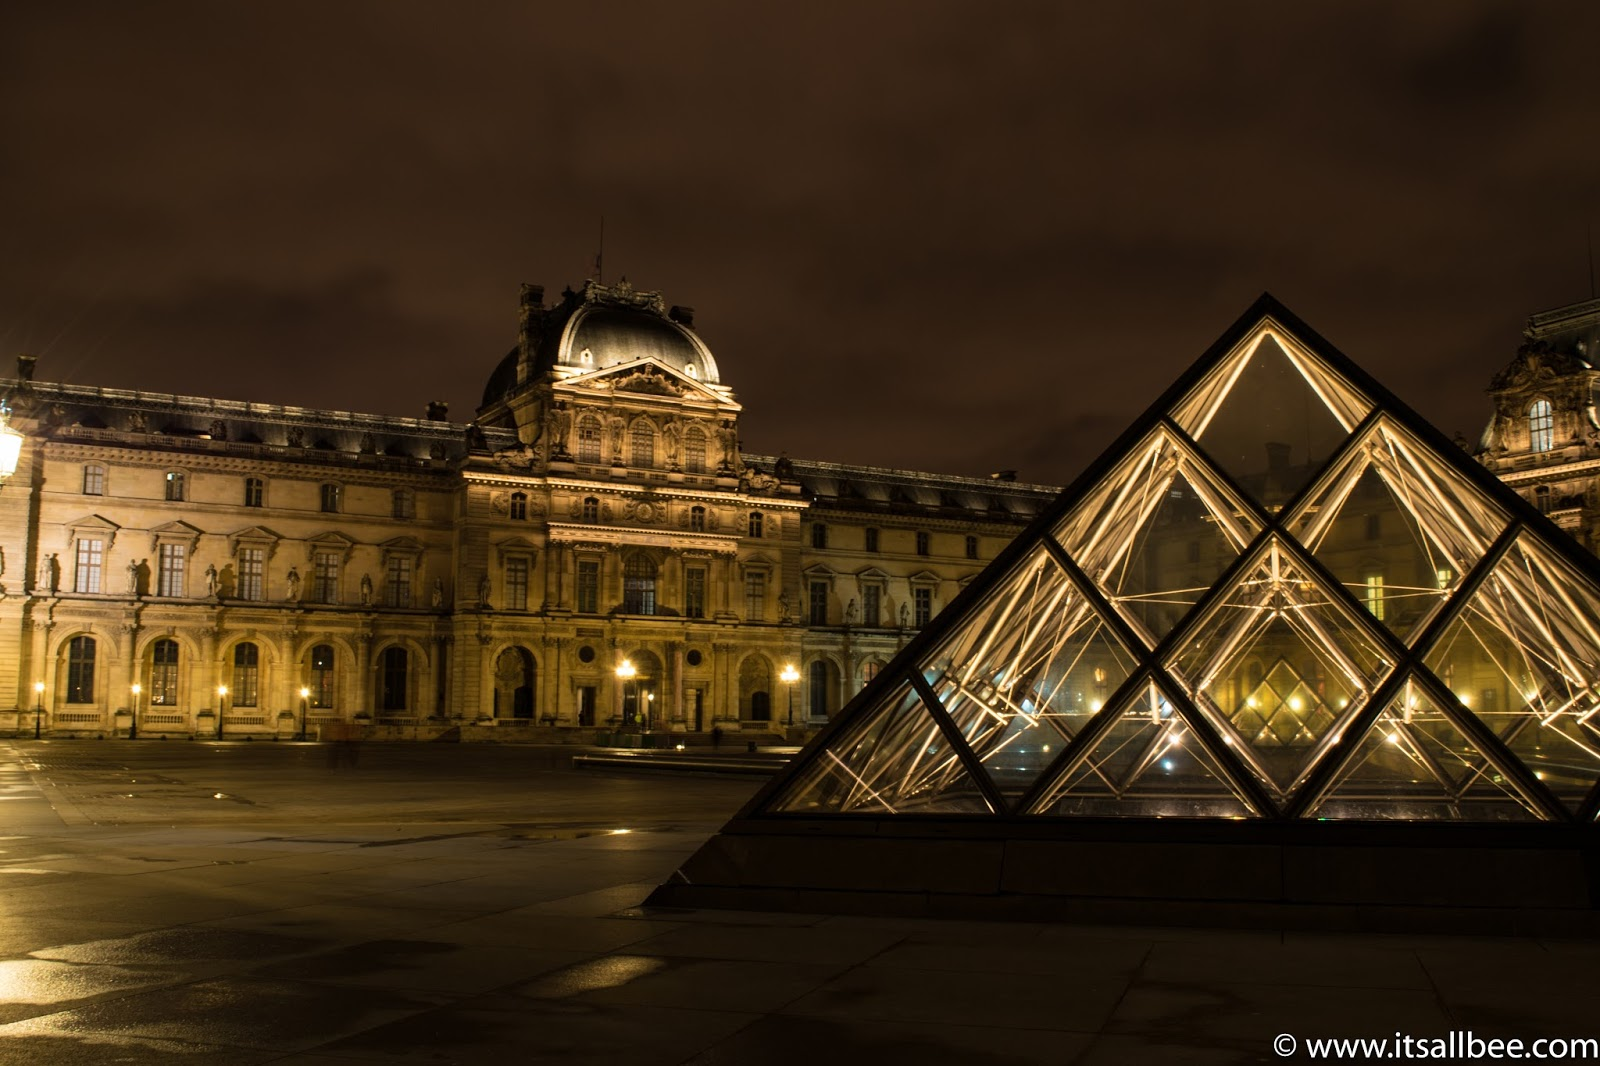 The Louvre Paris. Photo by Bianca - www.itsallbee.com